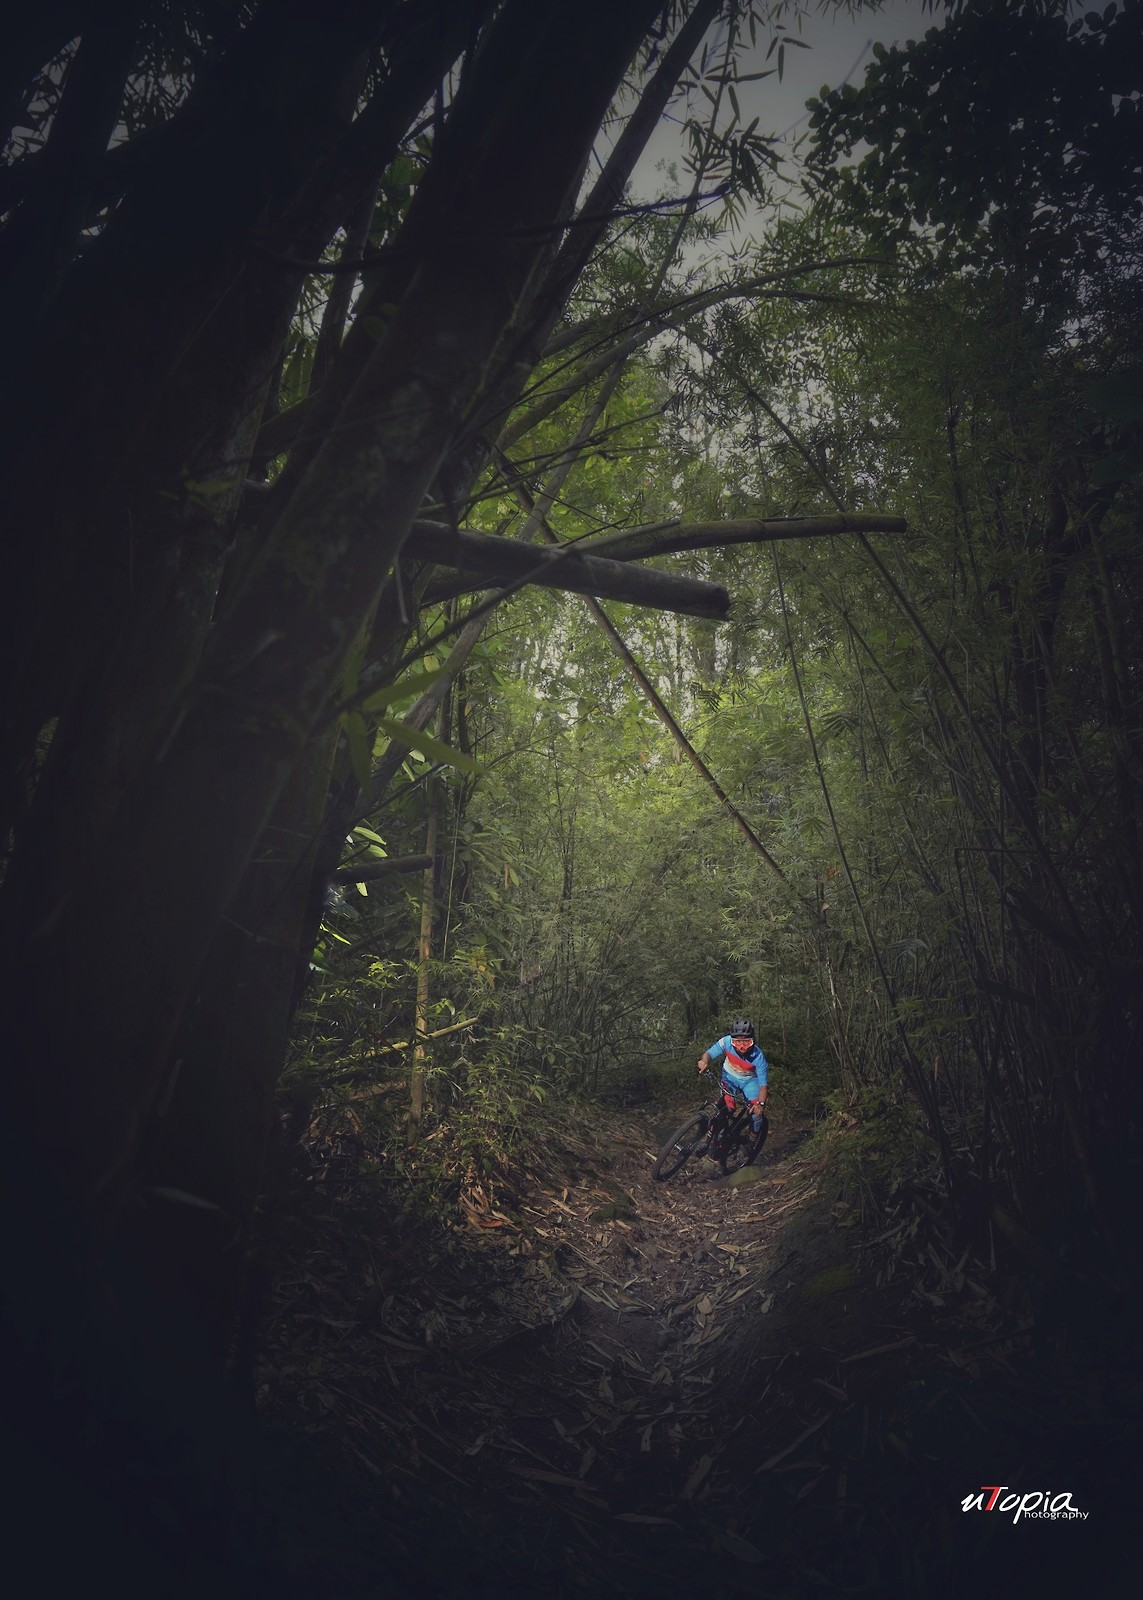 Gloomy Ride - utopiaarch - Mountain Biking Pictures - Vital MTB